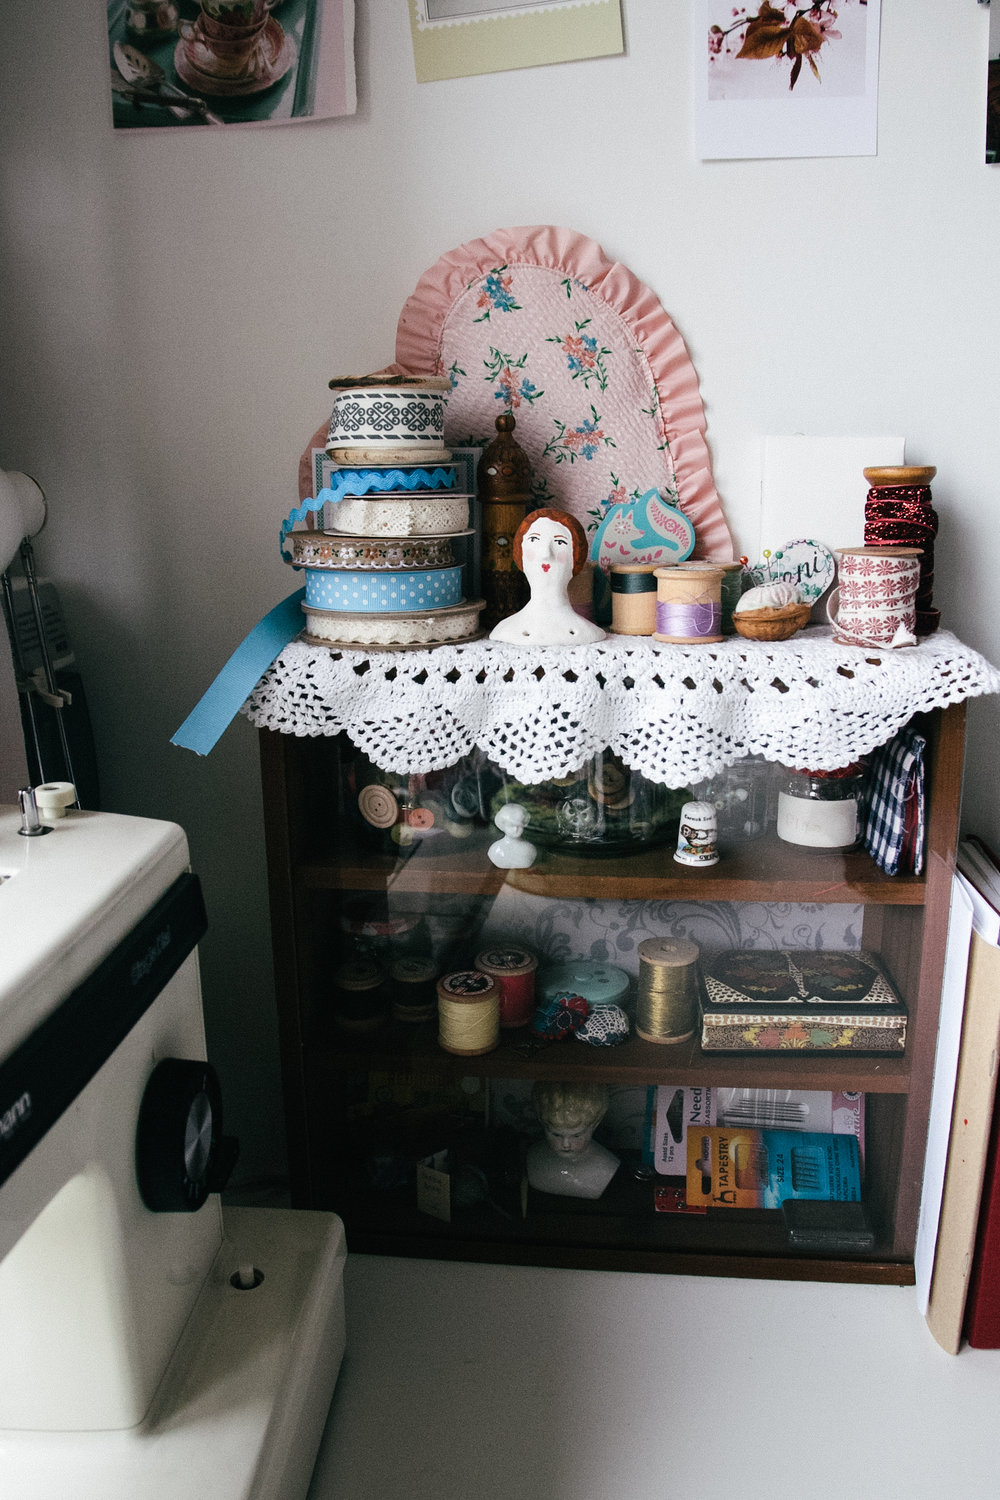 Madeline Norris - Studio tour | The Paperdolls